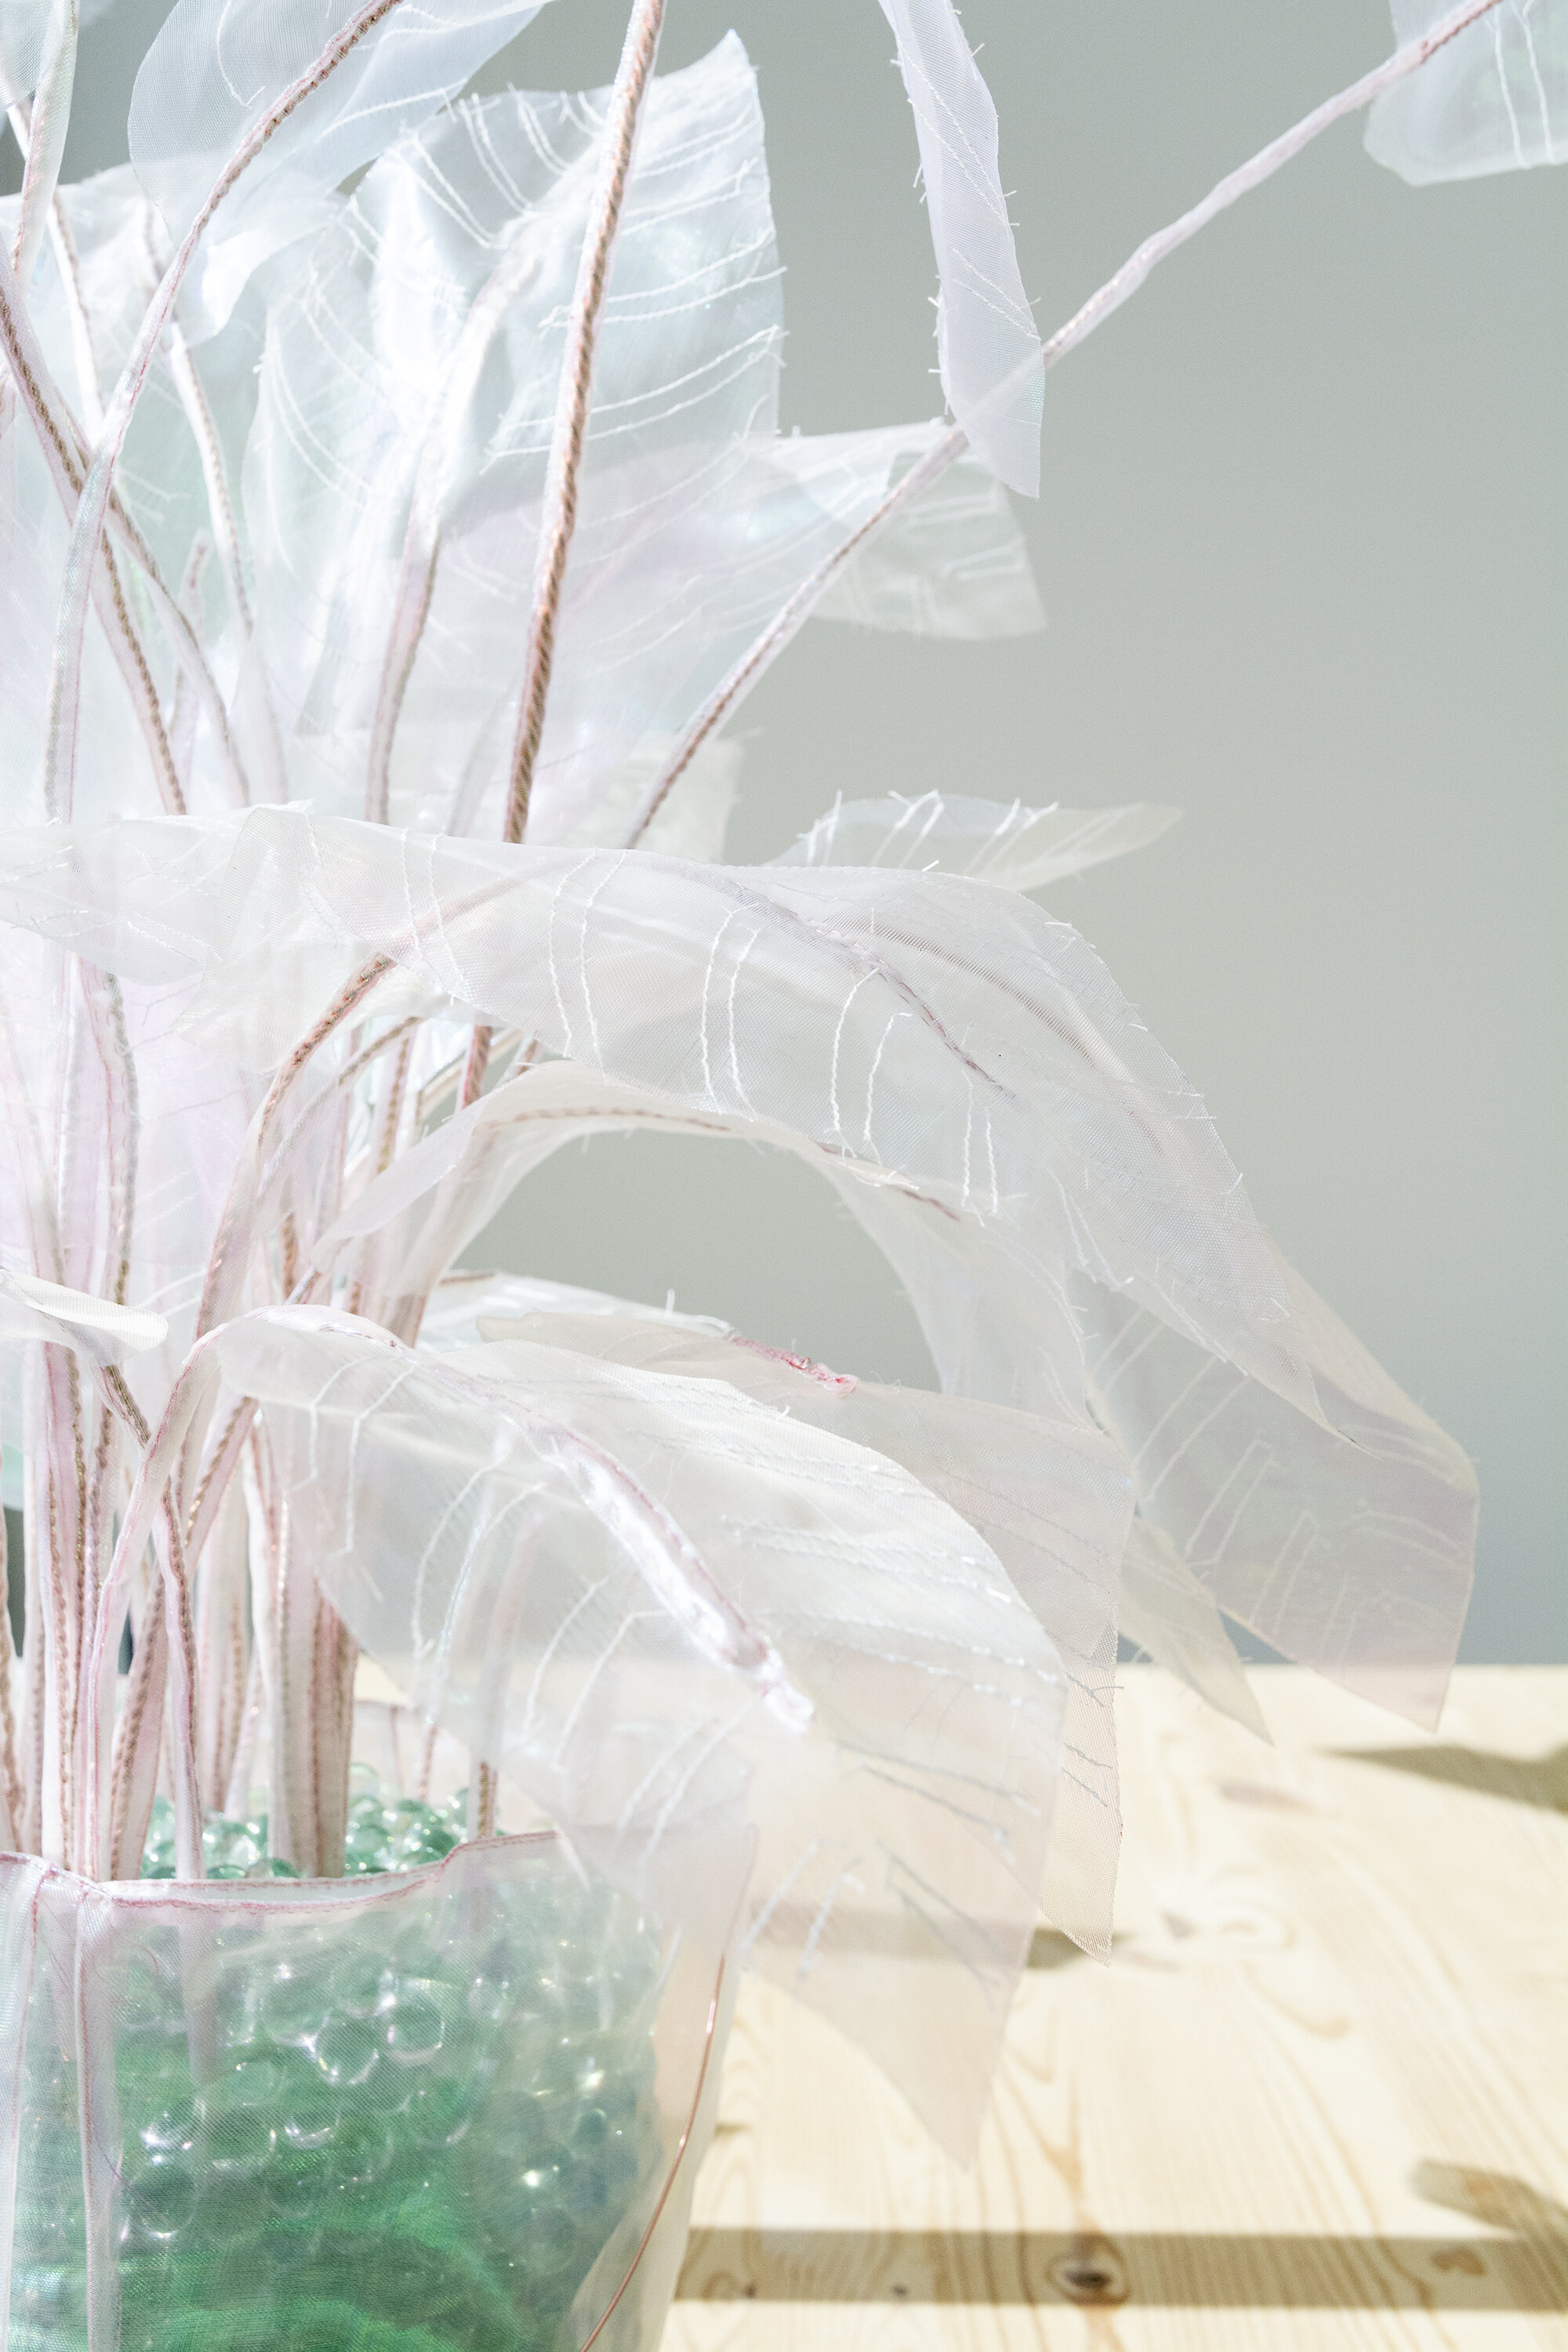 Plant - Joyce Overheul, Plant, 2017 (detail)handmade 1:1 replica of real plant, organza, glass marbles, ca. 90 x 75 x 20cm, unique€ 570,- incl. VAT, certificate of authenticityThis is a special price maintained only by Lauwer with the artist's consent.